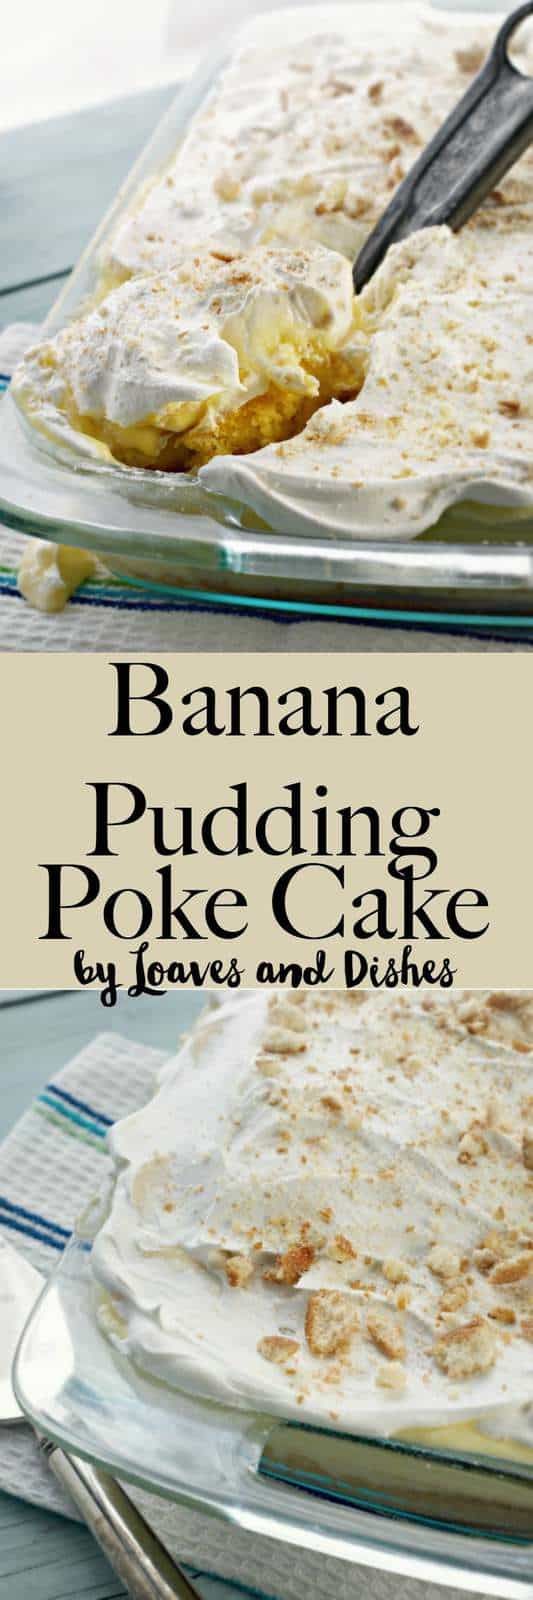 Simple, easy and DELICIOUS Banana Pudding Poke Cake has homemade scratch cake taste without all the trouble. Like grandma's kitchen. A Country taste you can be proud to take anywhere - cookout, family dinner or just have at home!